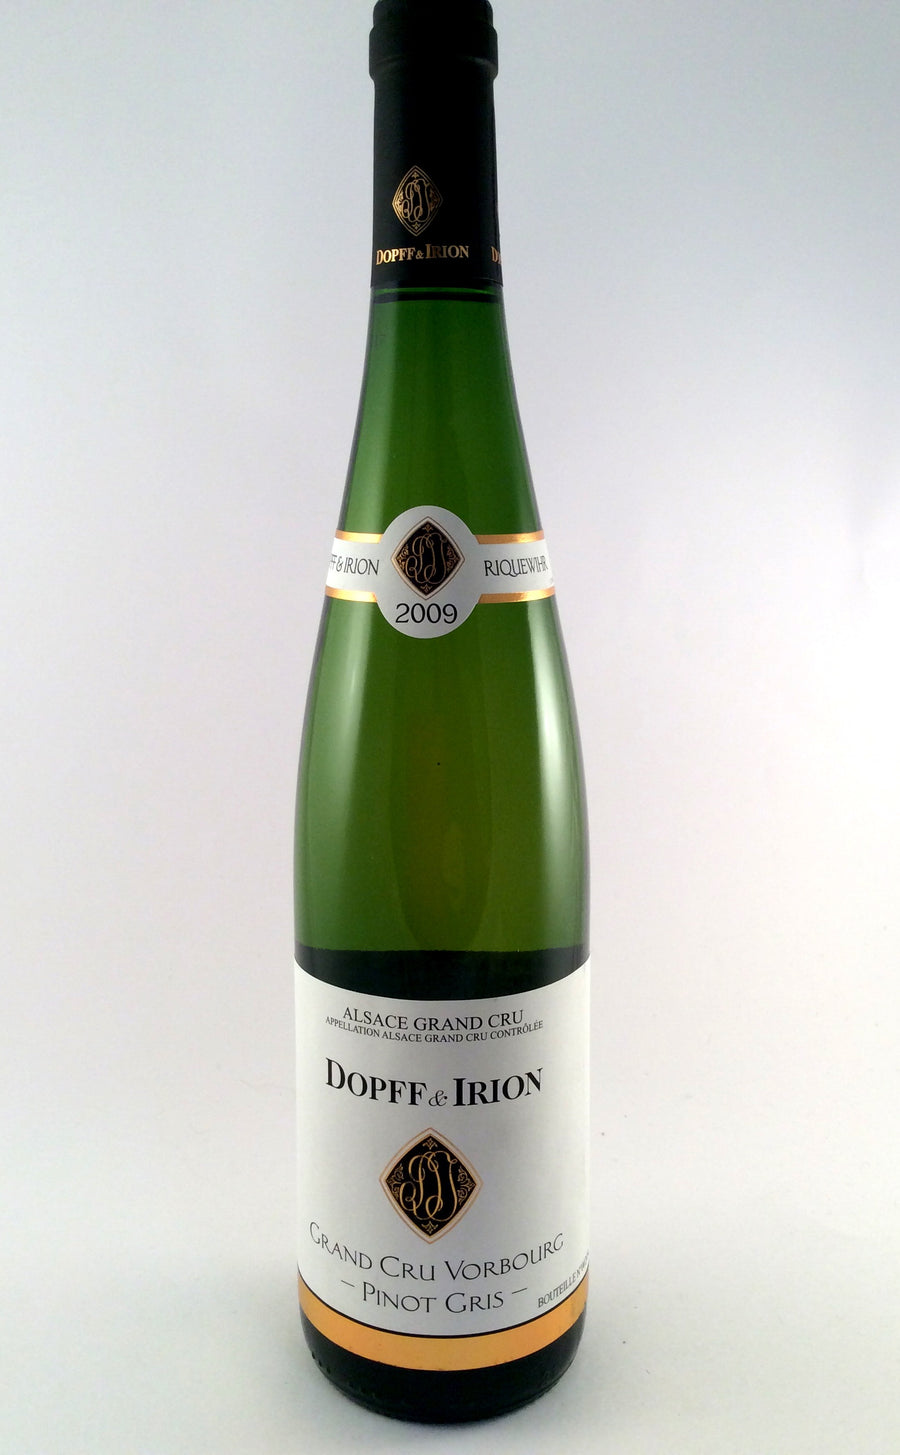 Dopff & Irion Grand Cru Pinot Gris Vorbourg